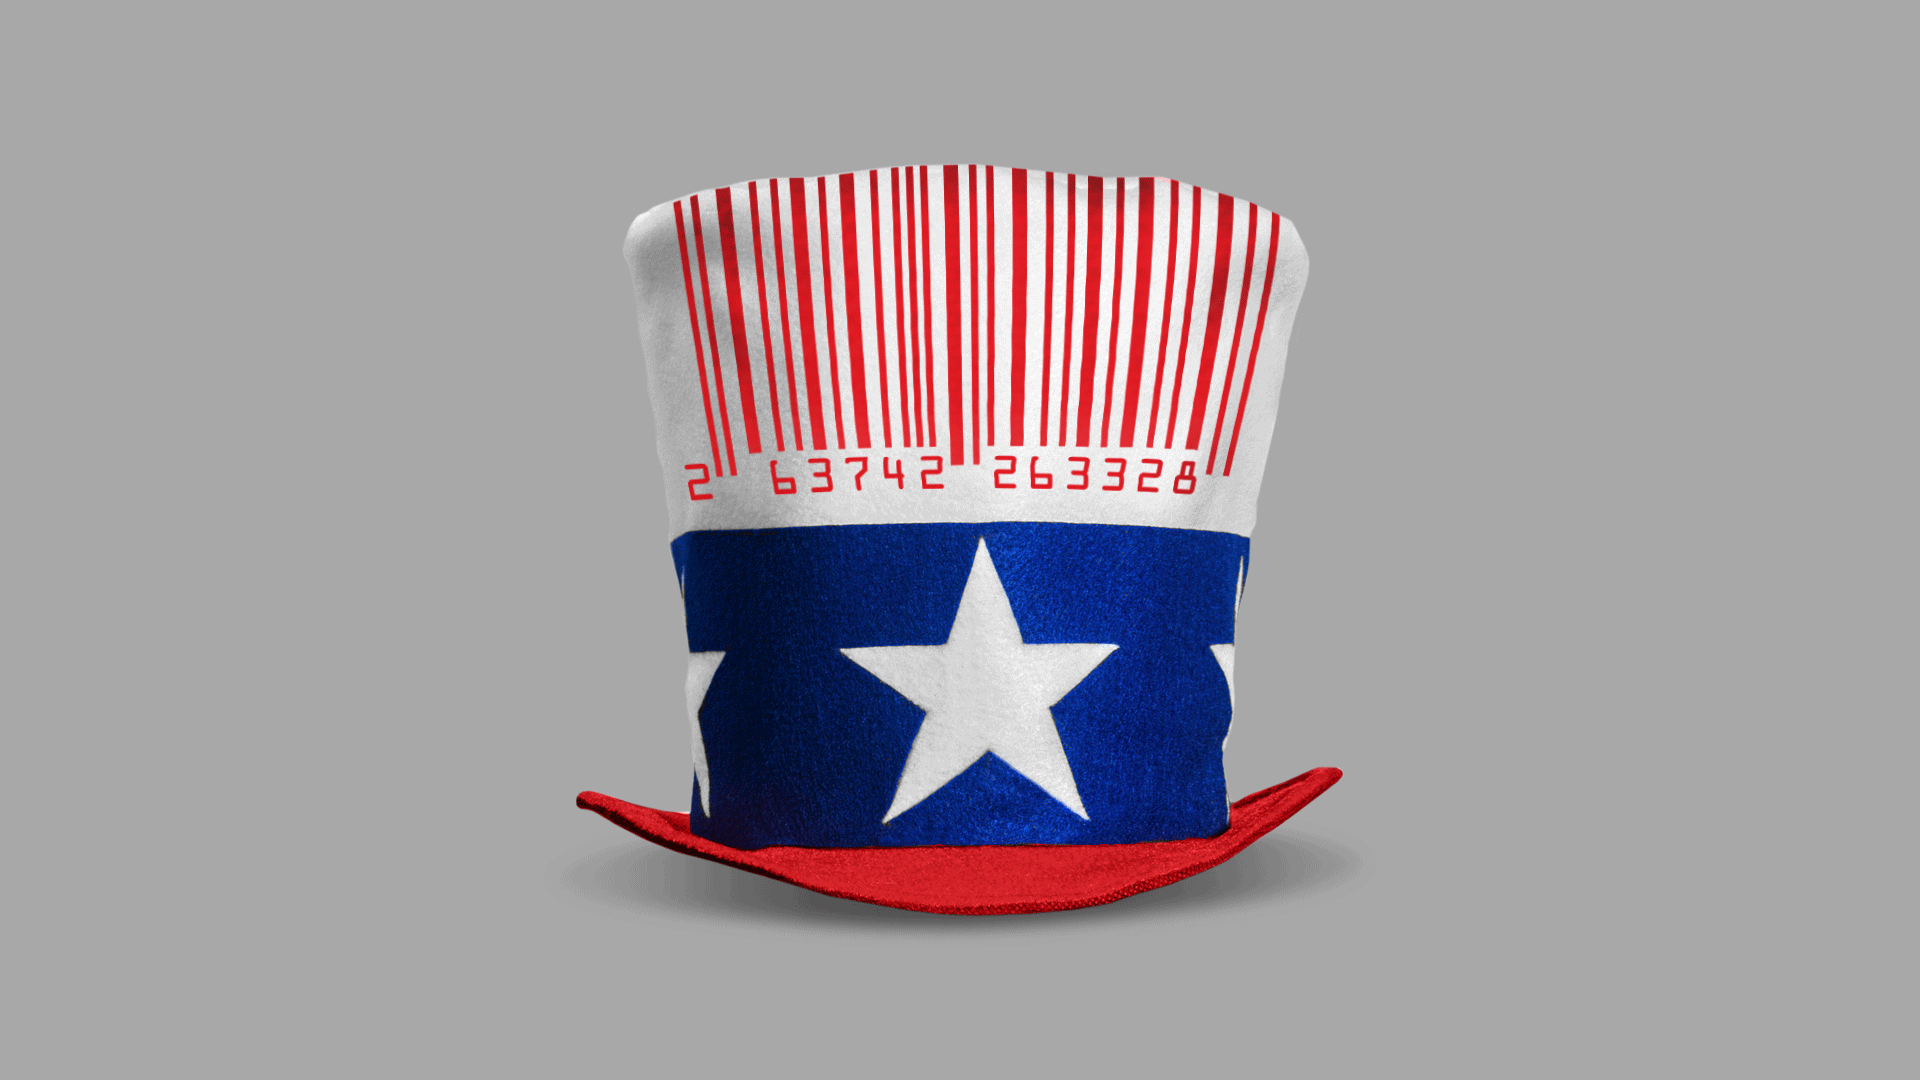 Illustration of an Uncle Sam hat with a barcode as stripes on the flat top crown area. Barcode numbers read 2 63742 263328.